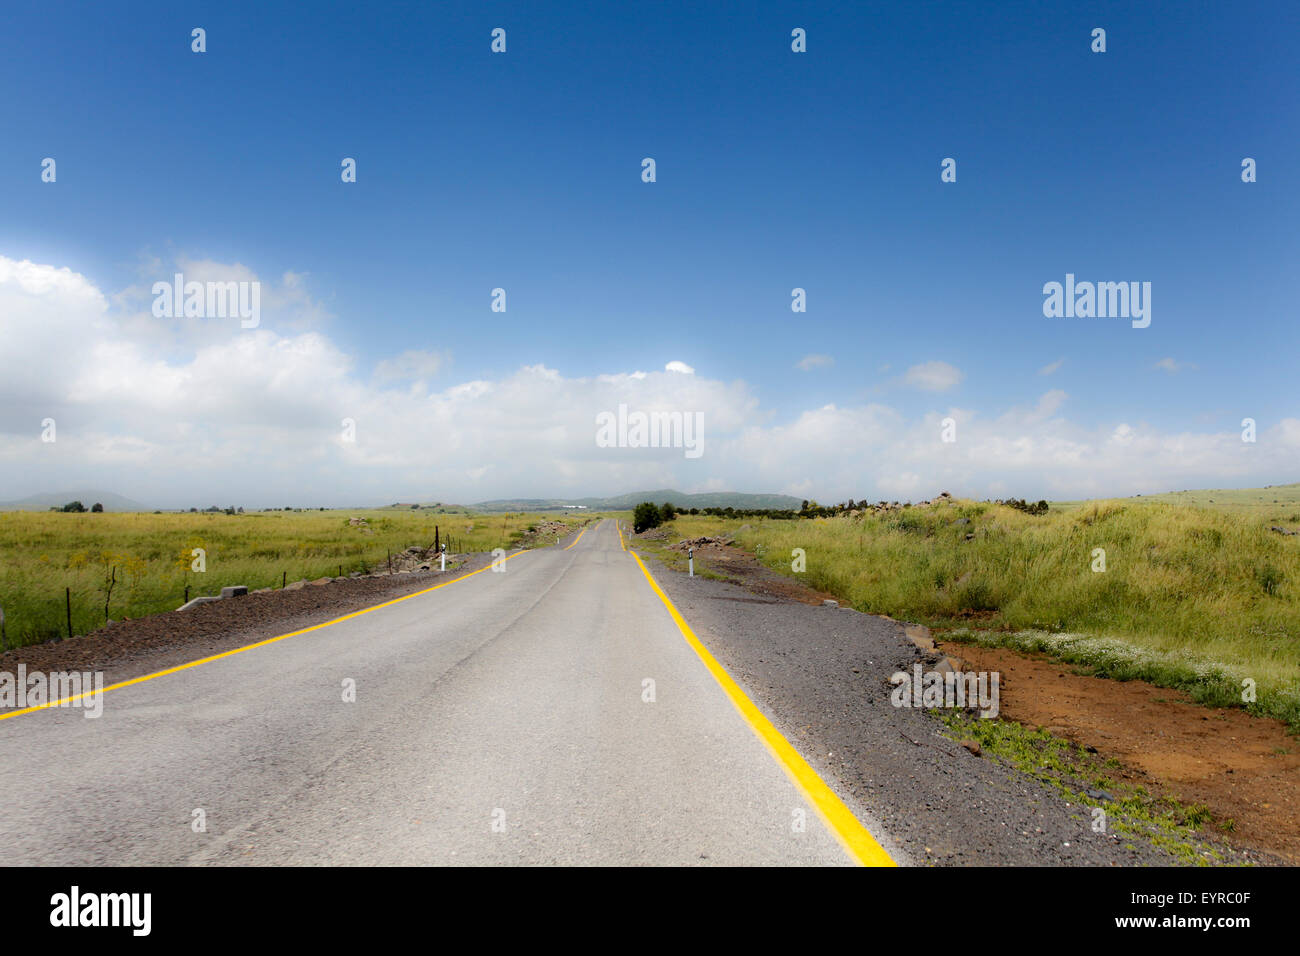 Straight road to vanishing point on the horizon with no traffic. Photographed in the Golan Heights, Israel - Stock Image